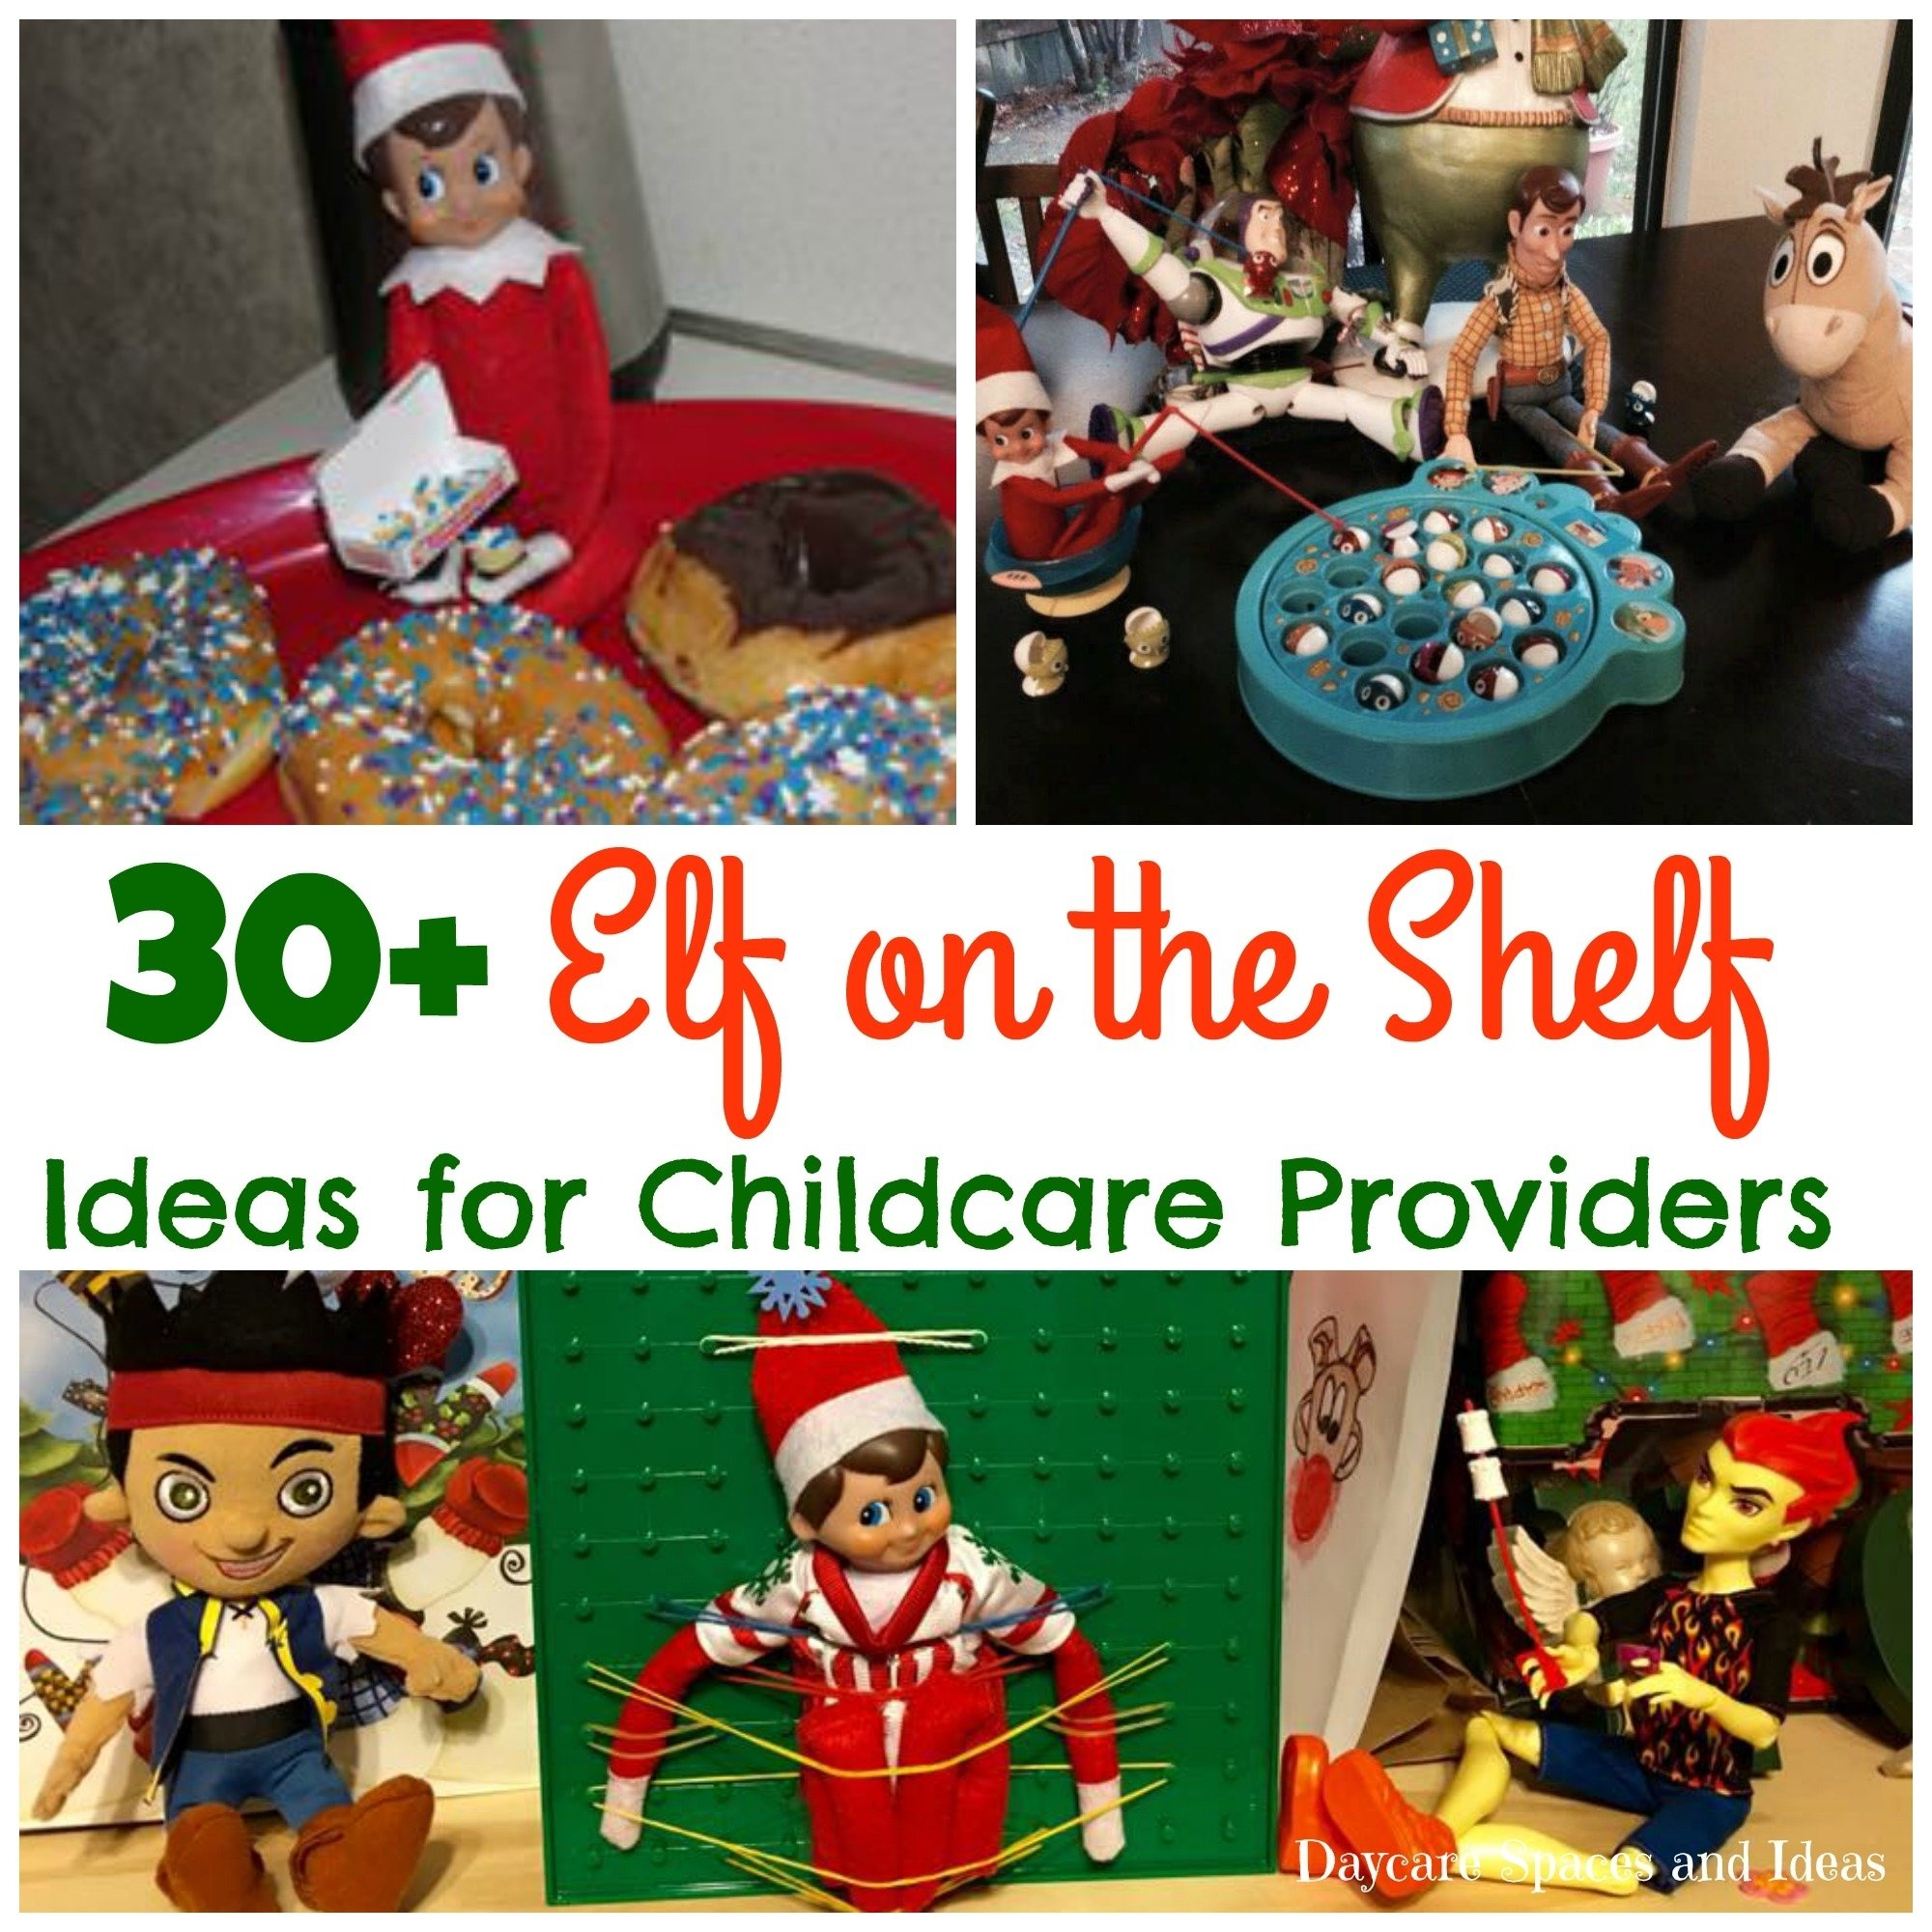 elf on the shelf ideas for childcare providers - daycare spaces and